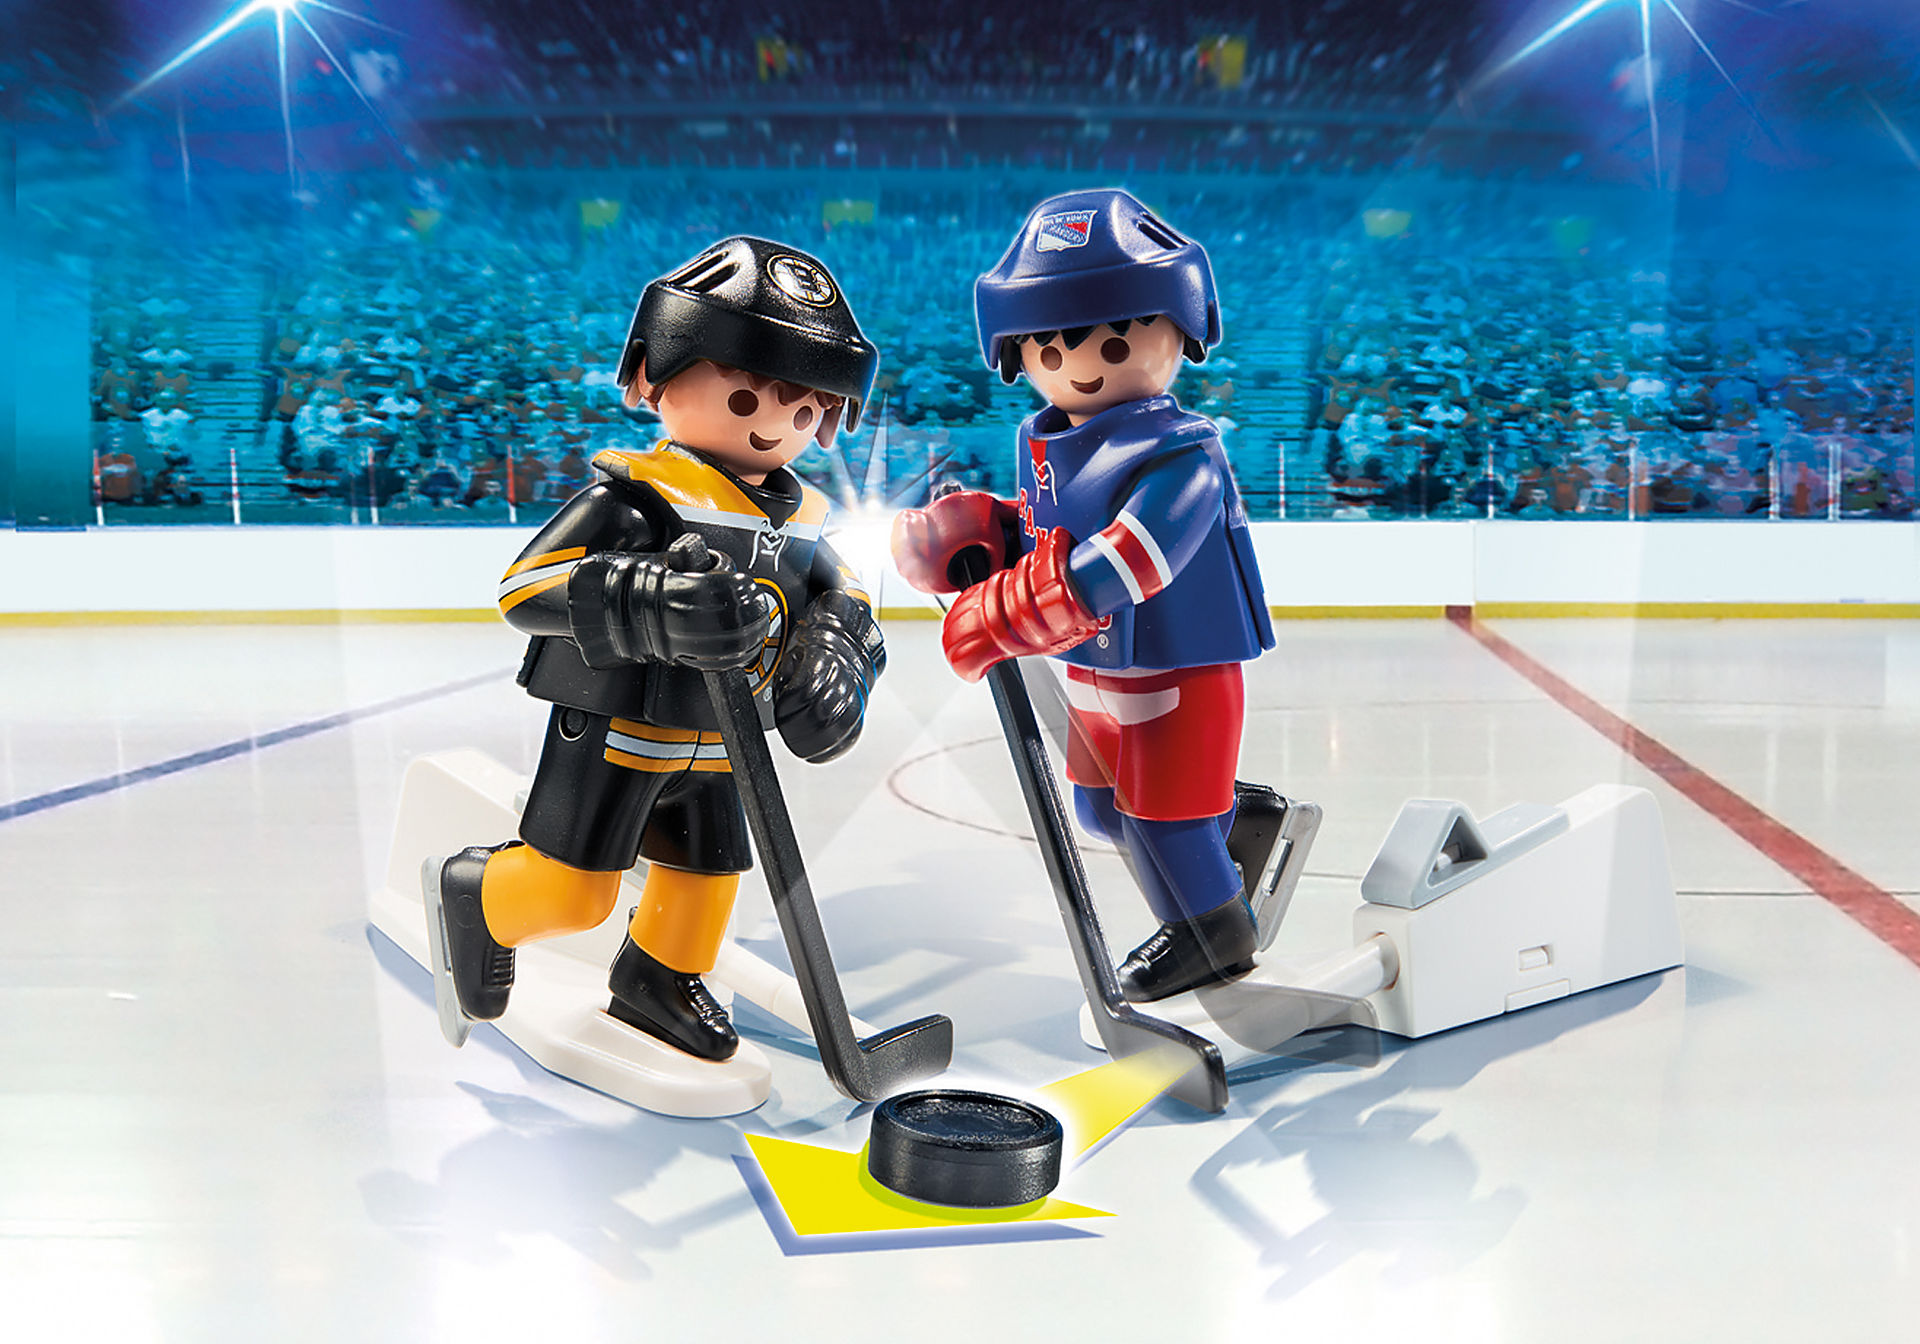 9012 NHL™ Blister Boston Bruins™ vs New York Rangers™ zoom image1